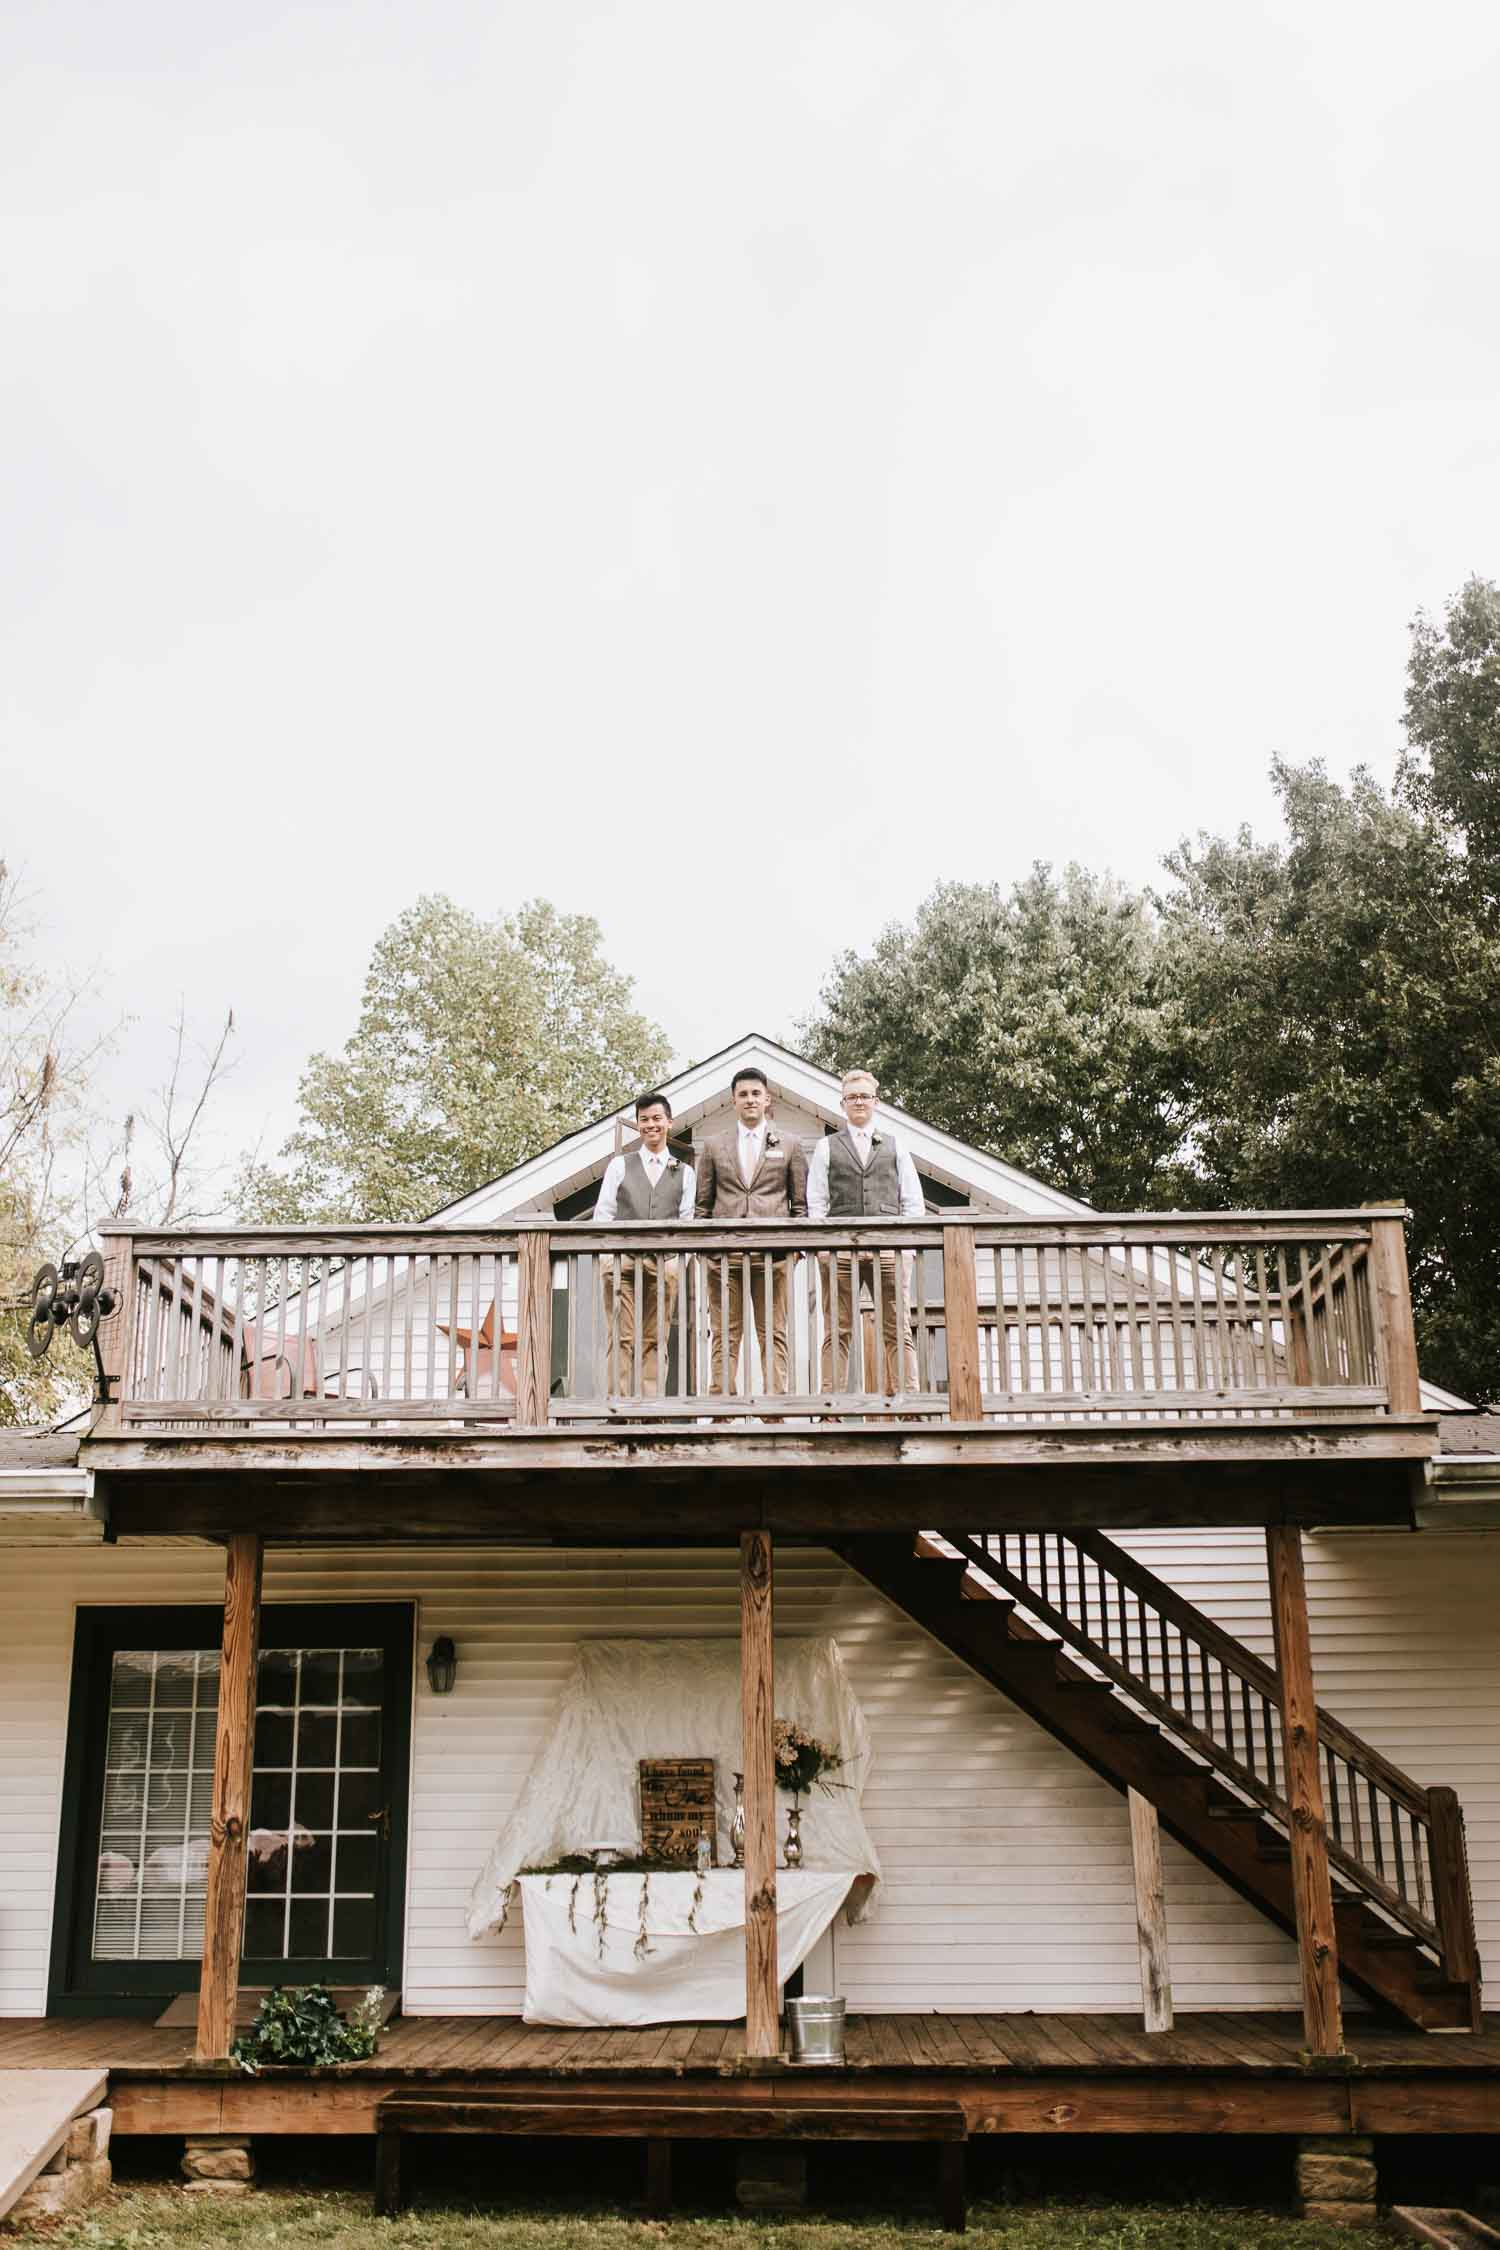 NashvilleWeddingPhotographer (4 of 44).jpg